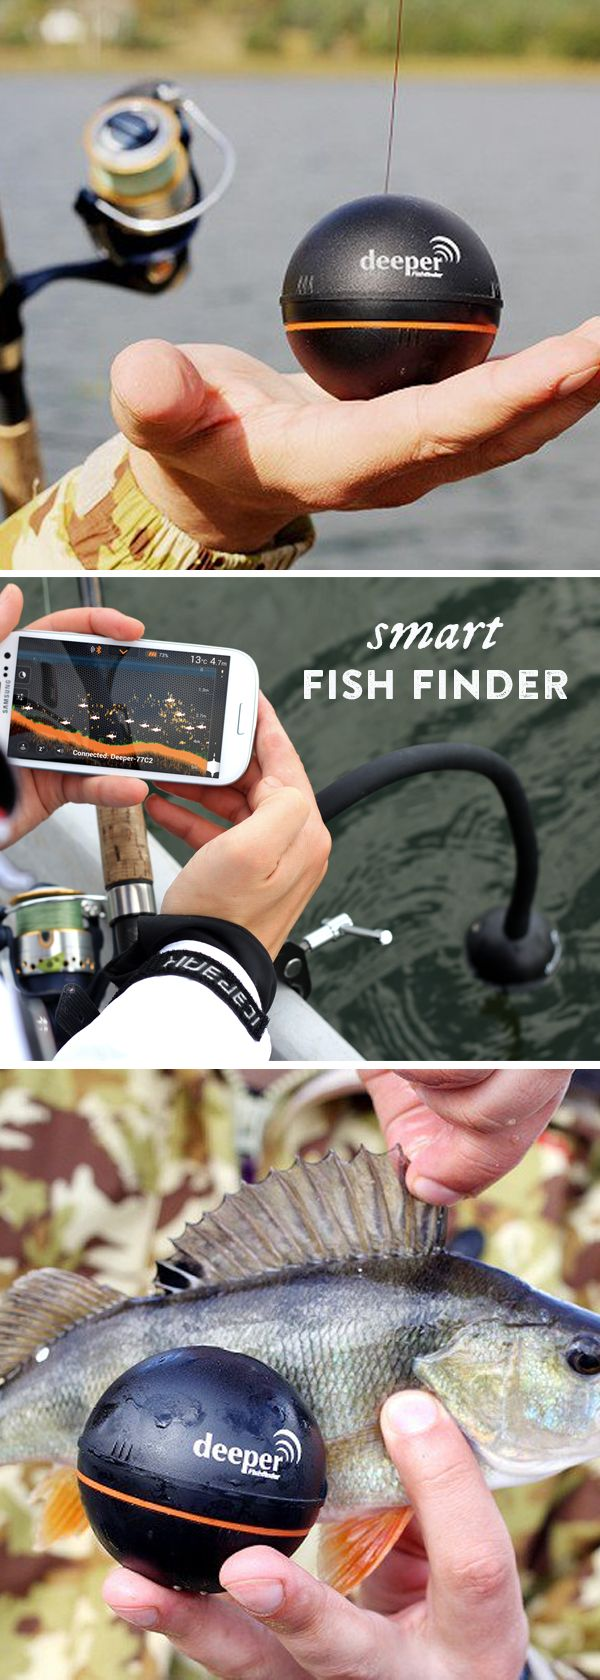 17 best images about fishing on pinterest | bass fishing, crappie, Fish Finder